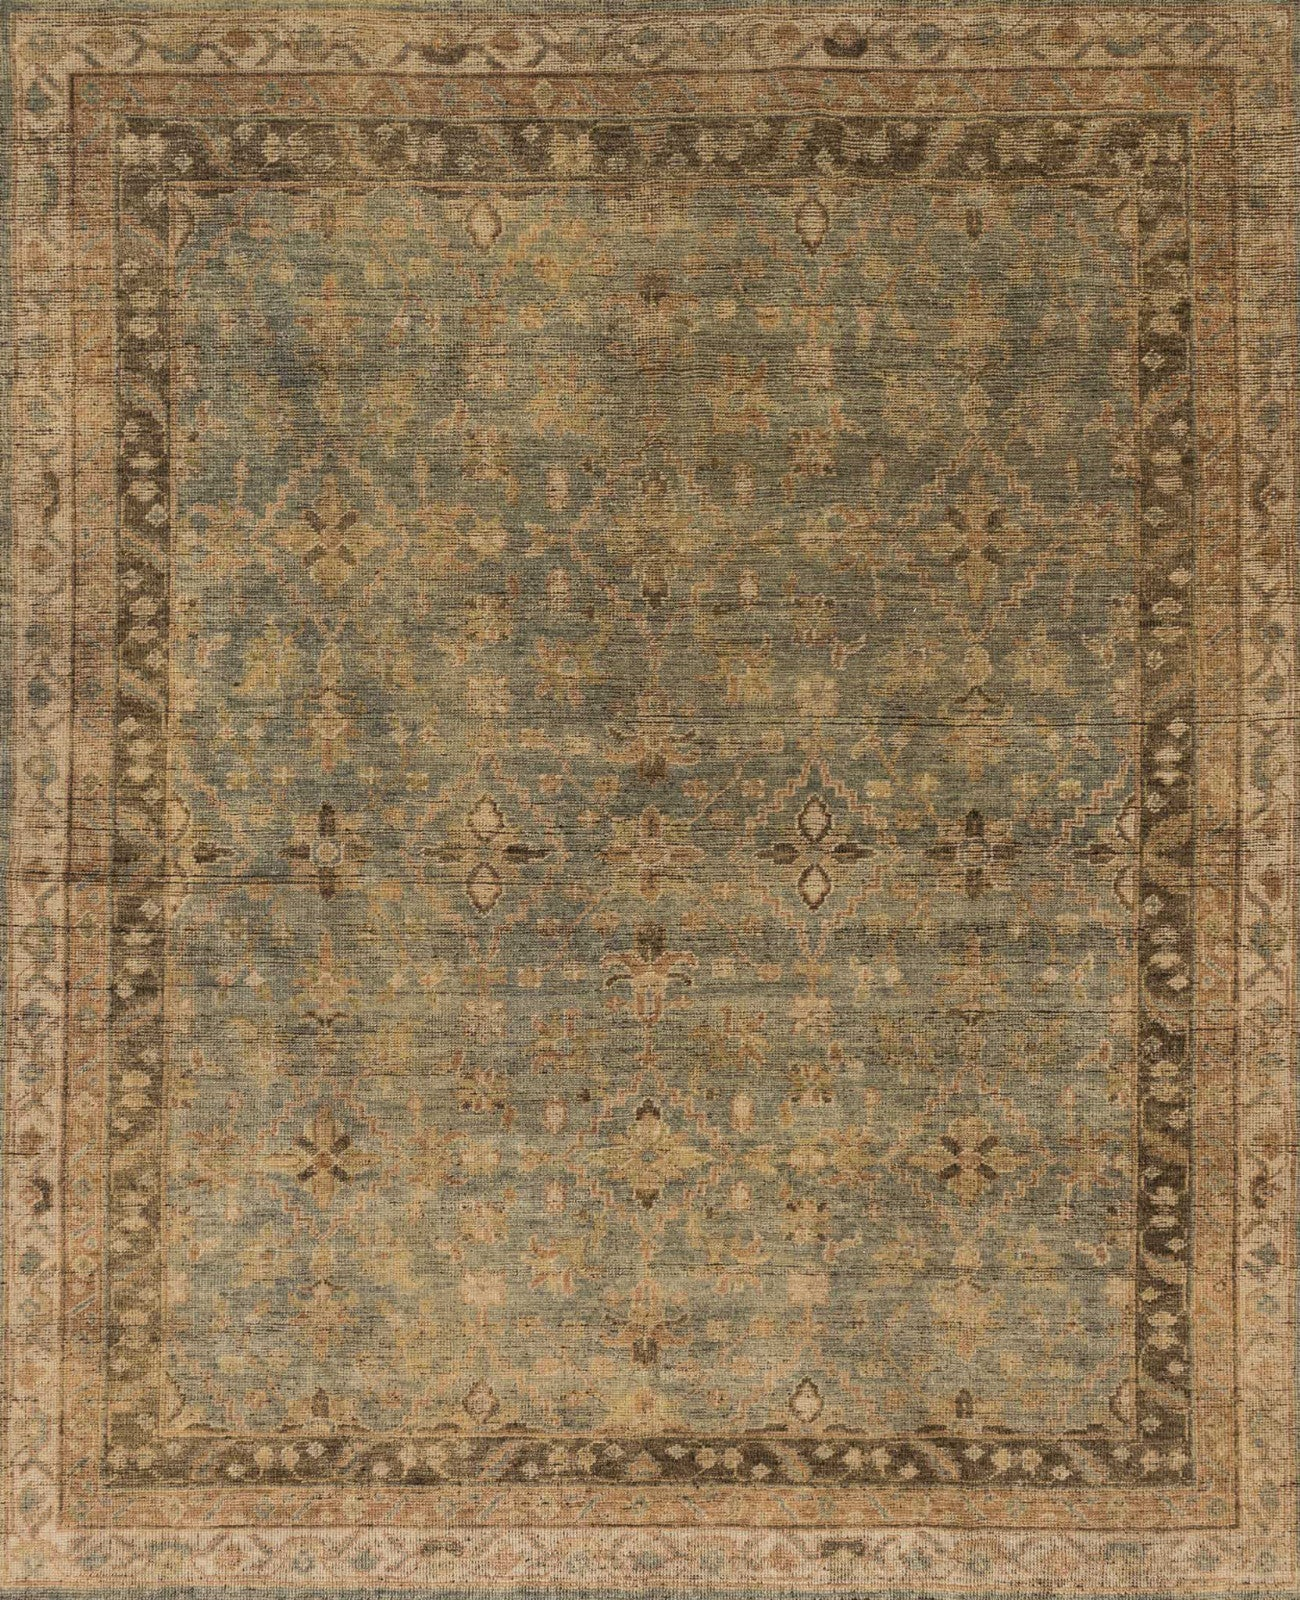 Loloi Heirloom HQ-04 Aqua/Terracotta Area Rug main image